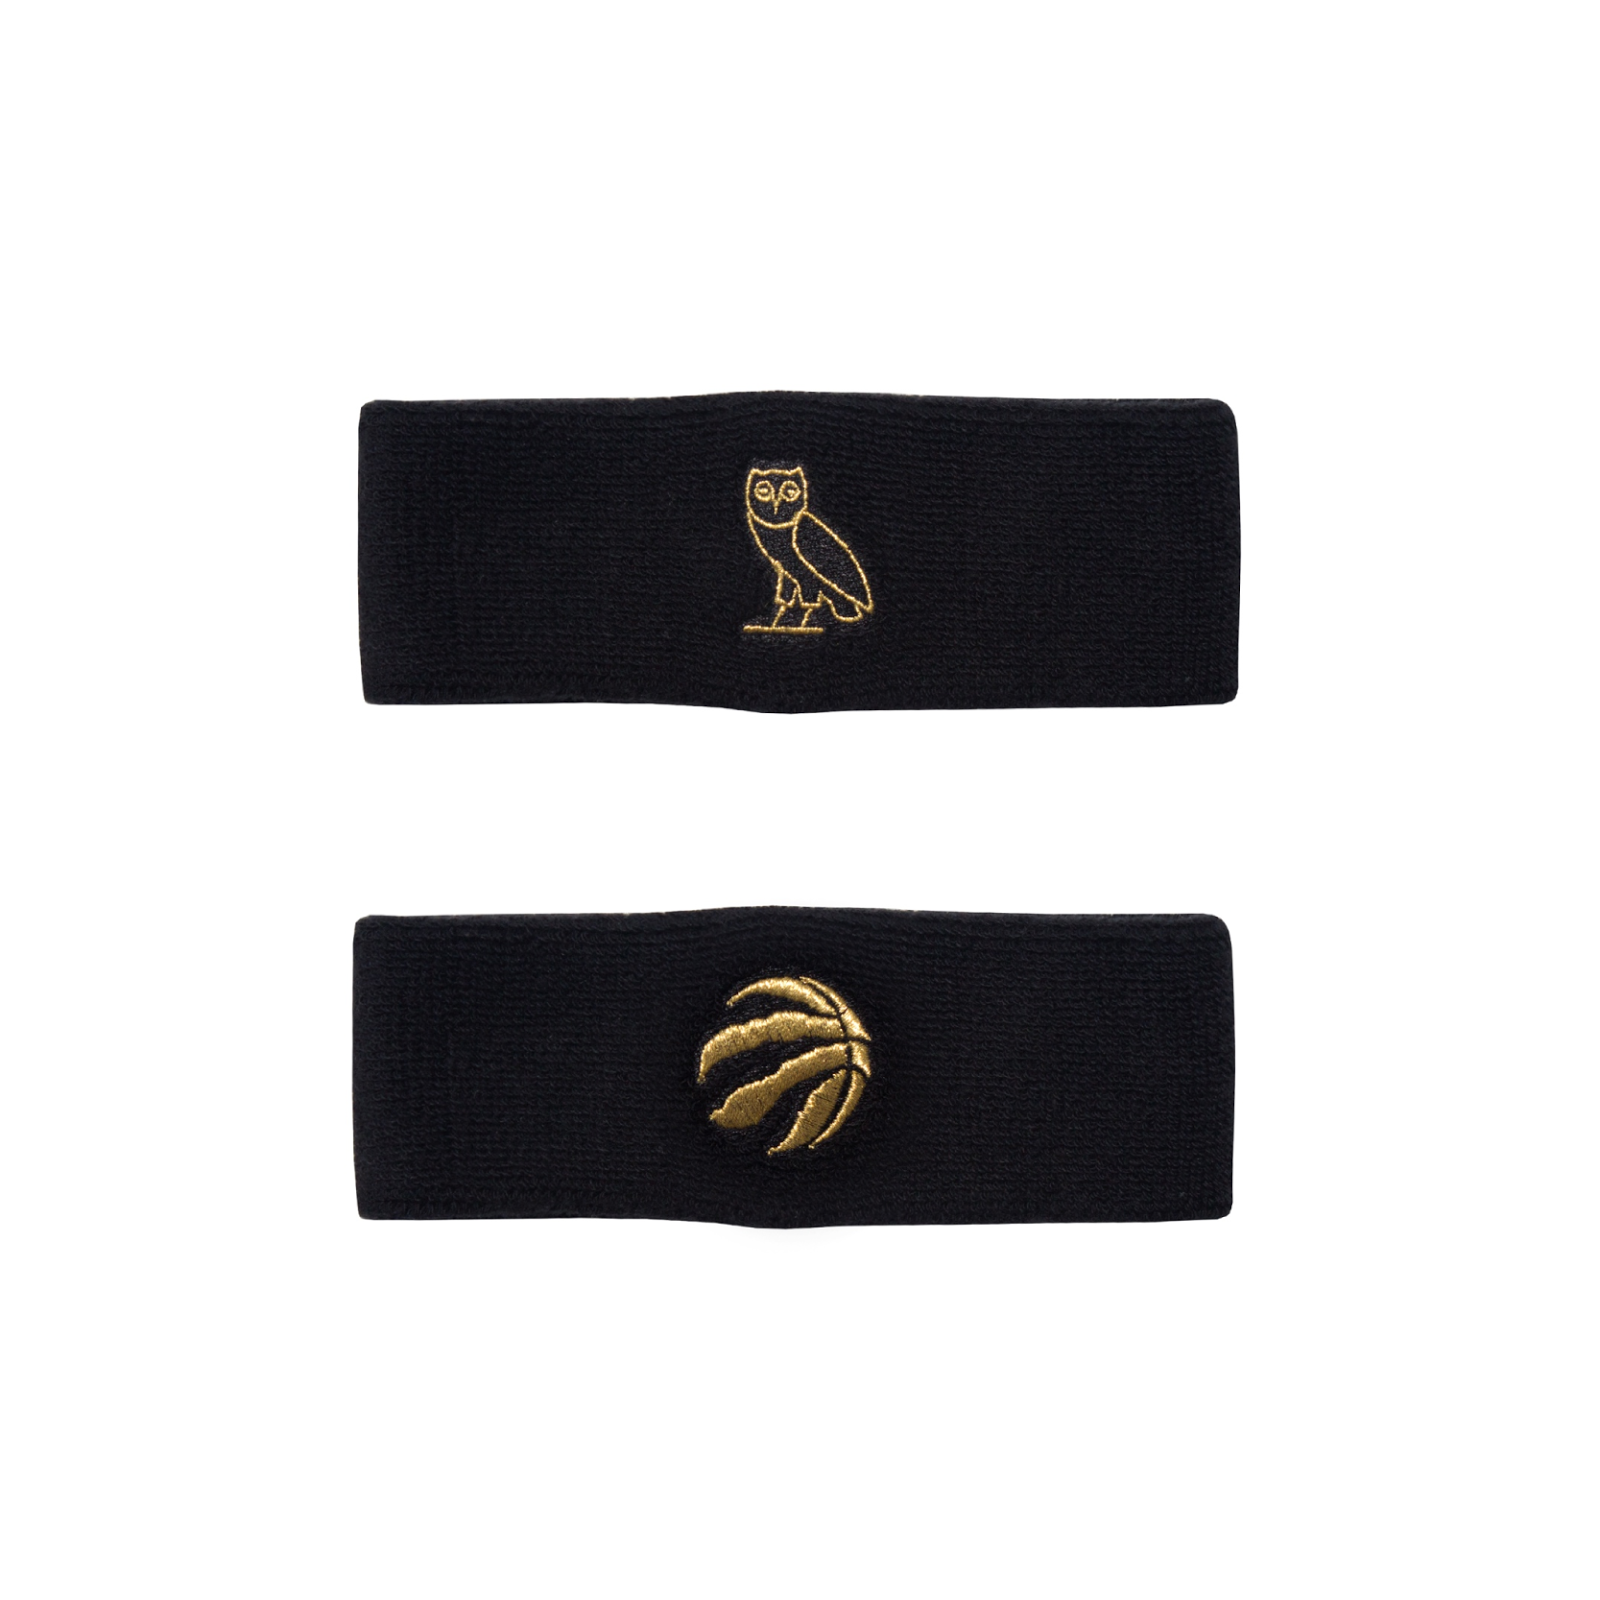 OCTOBERS VERY OWN  OCTOBER S VERY OWN PRESENTS THE TORONTO RAPTORS 2015-2016  SEASON DRAKE NIGHT GIVEAWAYS a70ae160c